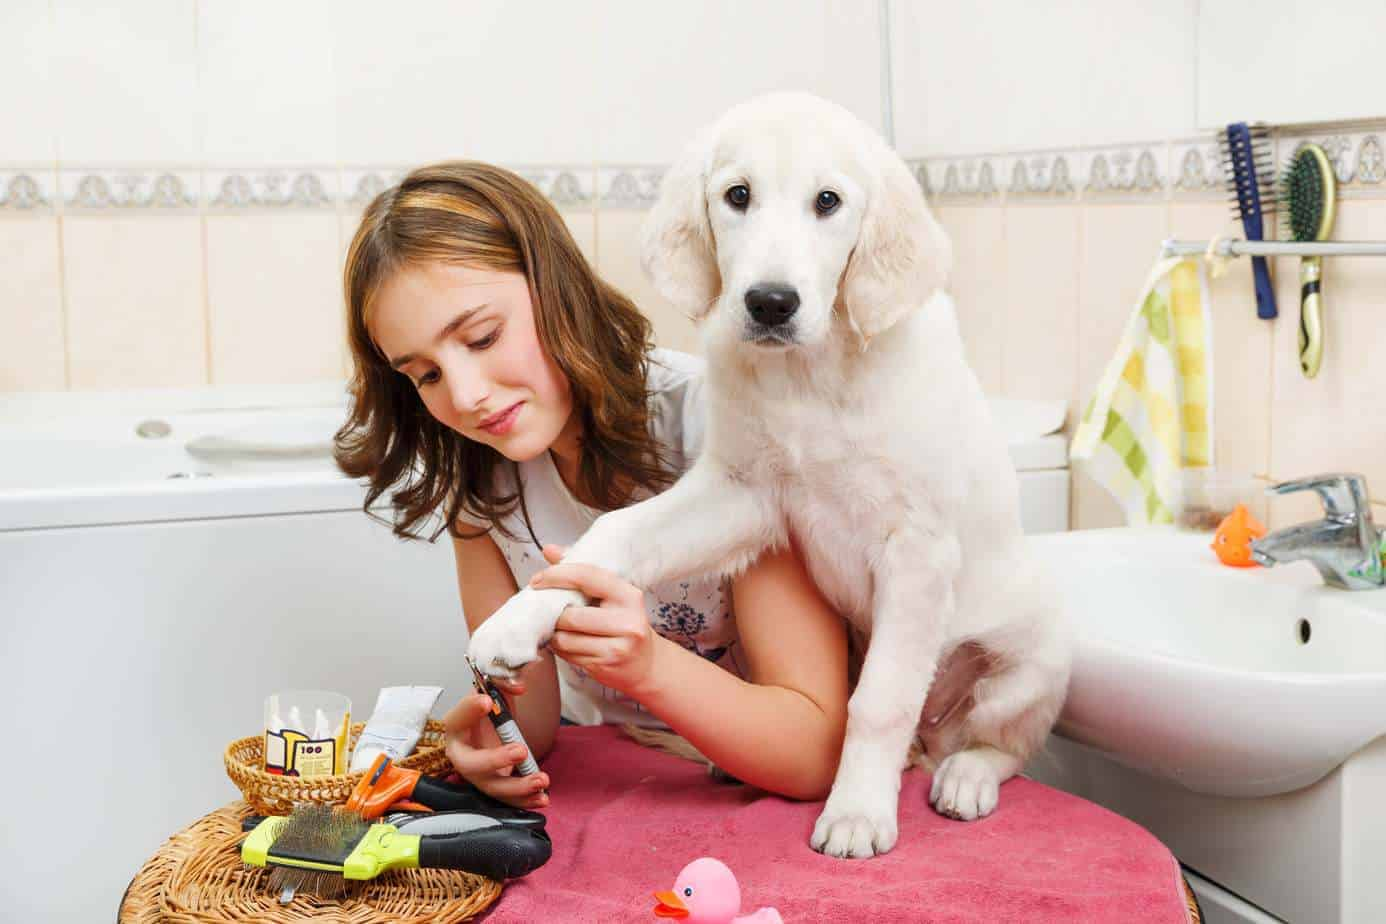 Woman clips dog's nails. Reduce grooming stress by getting the dog used to being around grooming equipment.